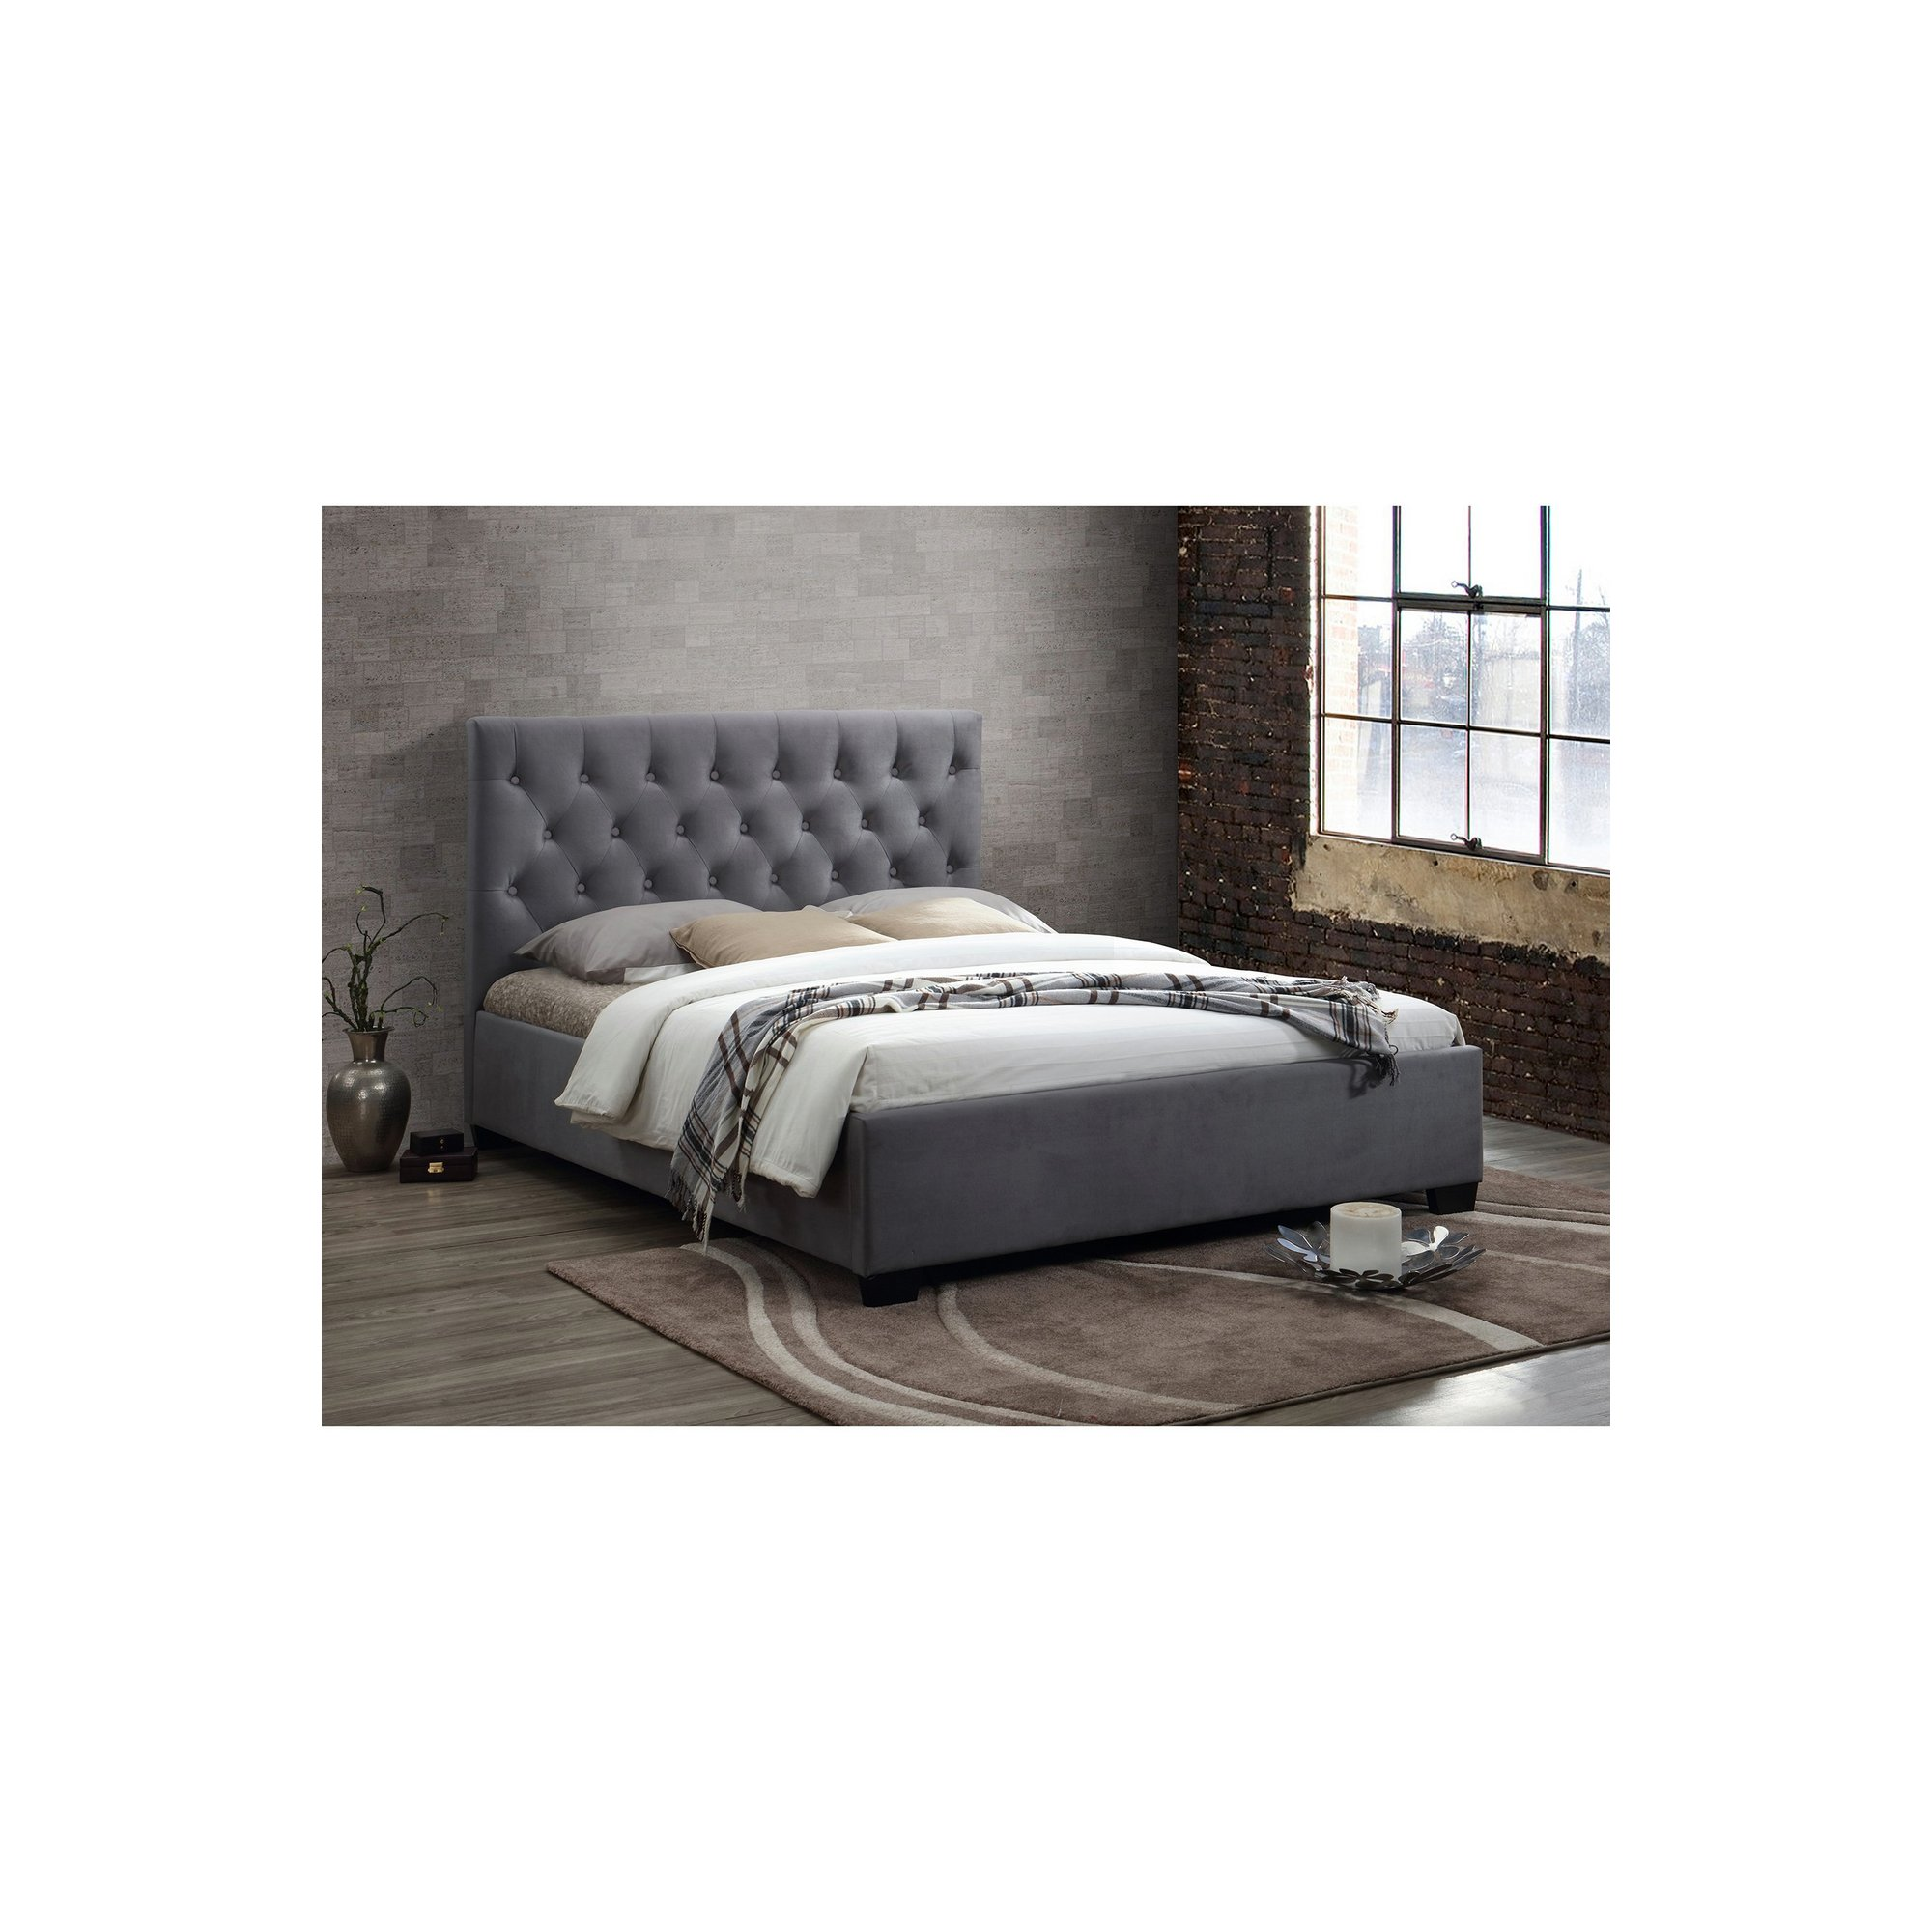 Image of Cologne Bed - Grey